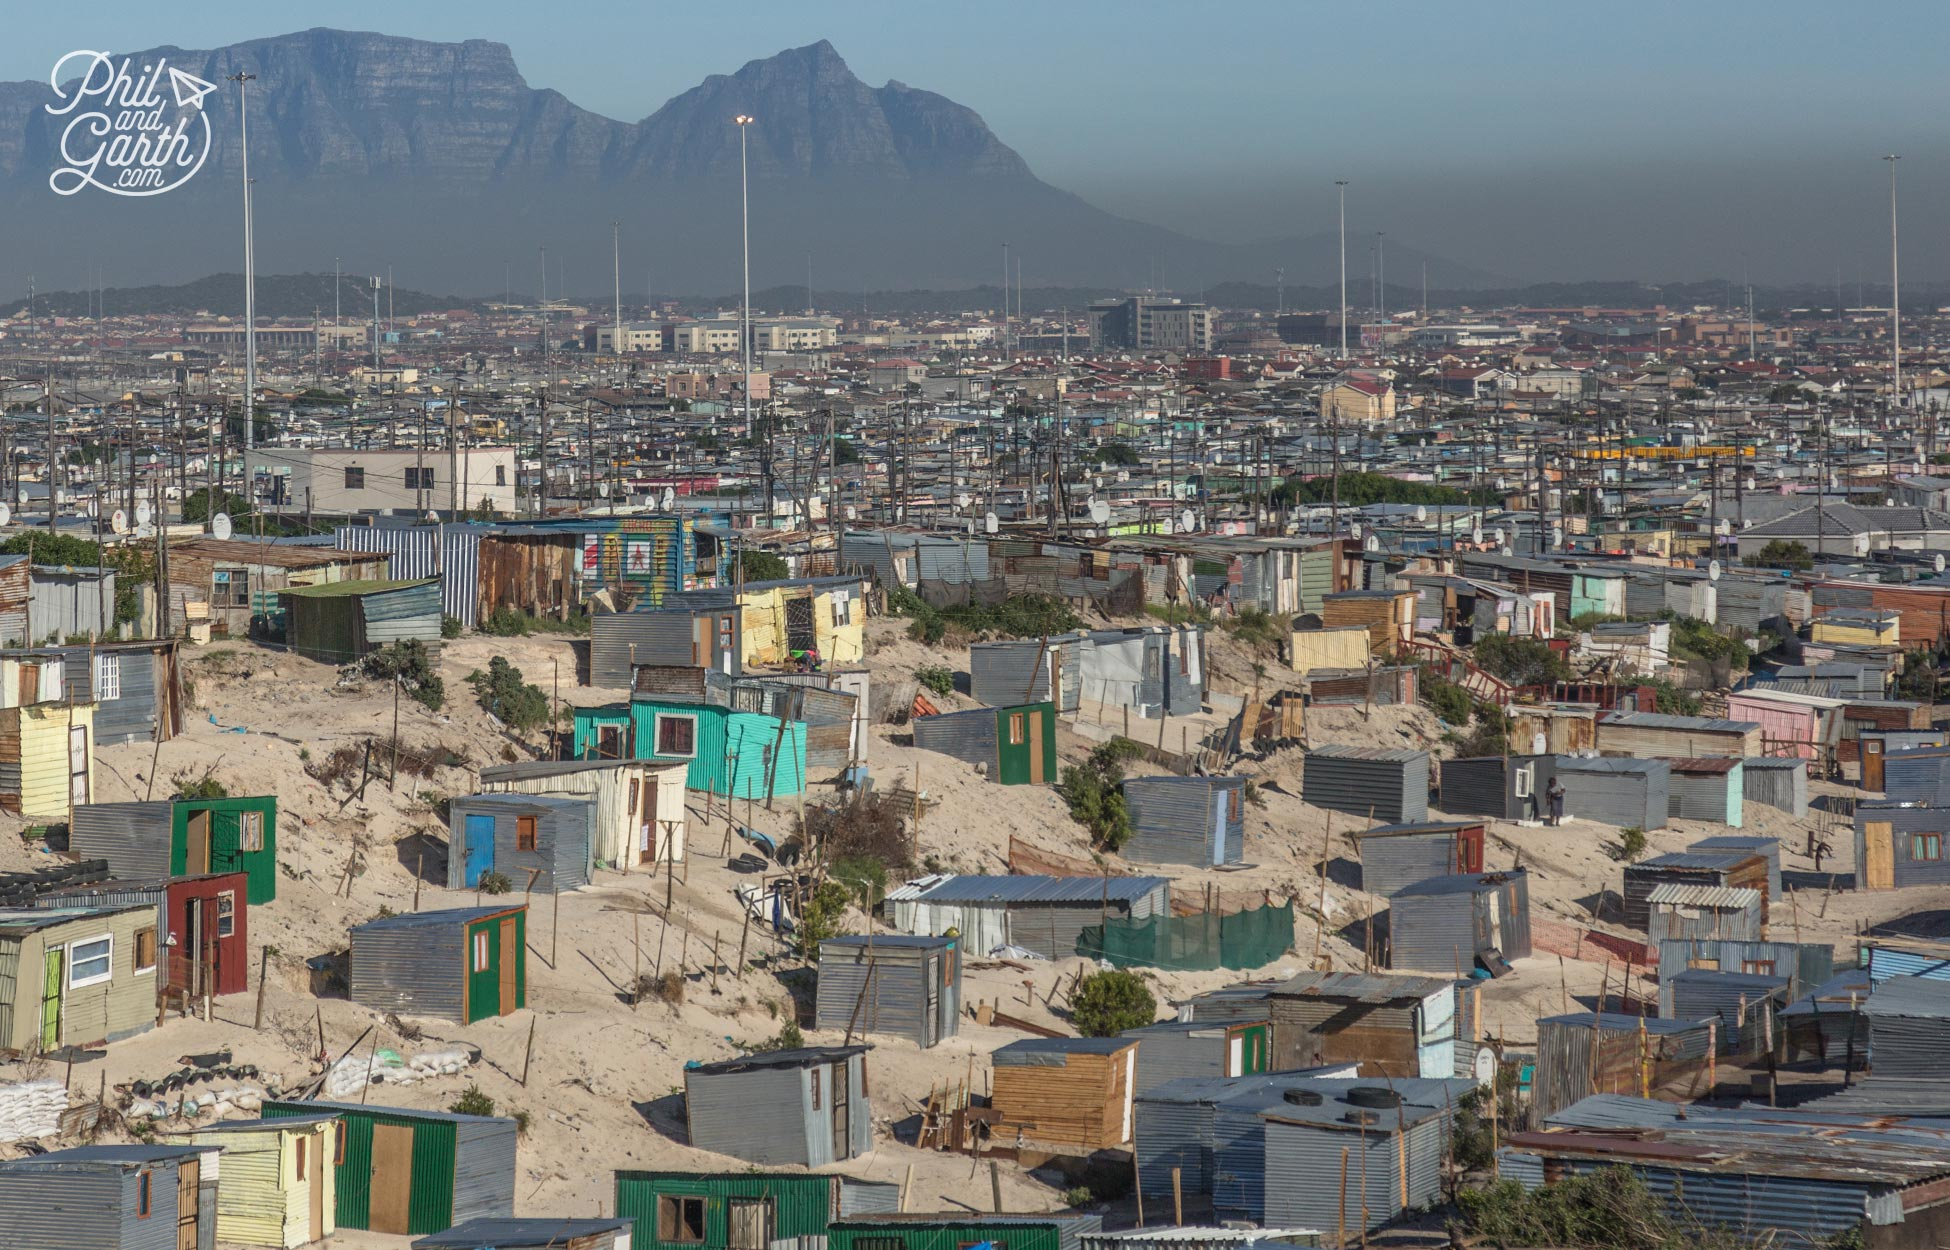 'The Flats' township outside Cape Town, look at that layer of smog!